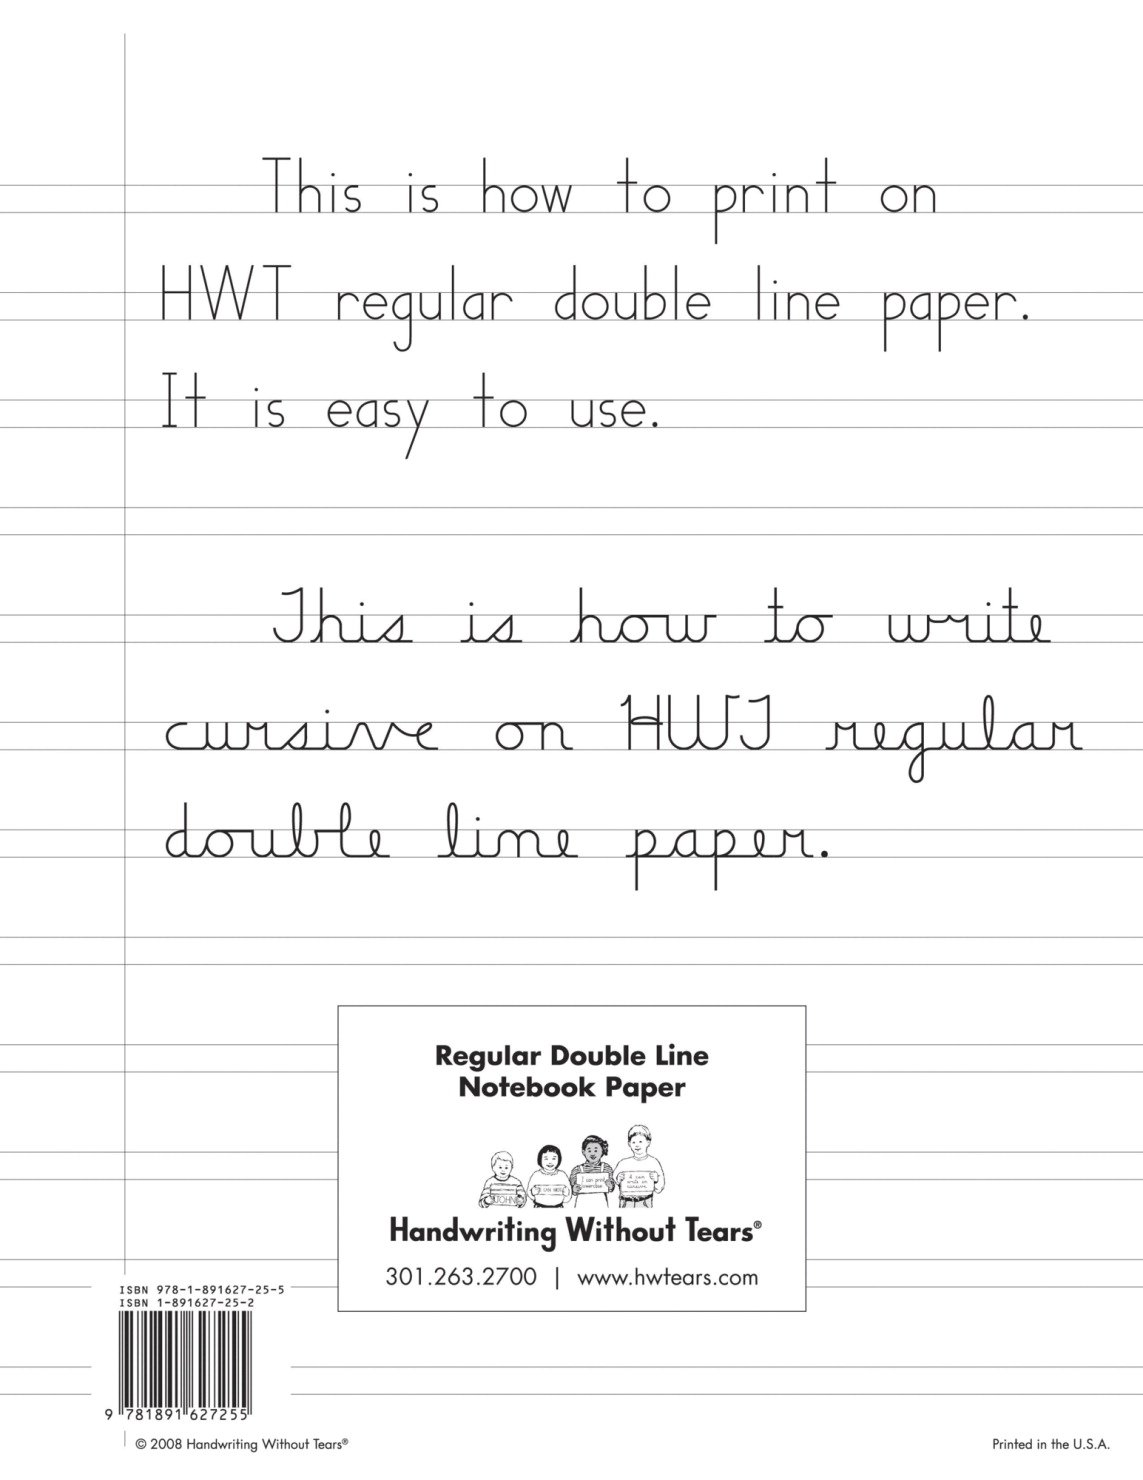 Amazon.com: Handwriting Without Tears Double Lined Notebook Paper, 100  Sheets: Everything Else  Printing On Lined Paper